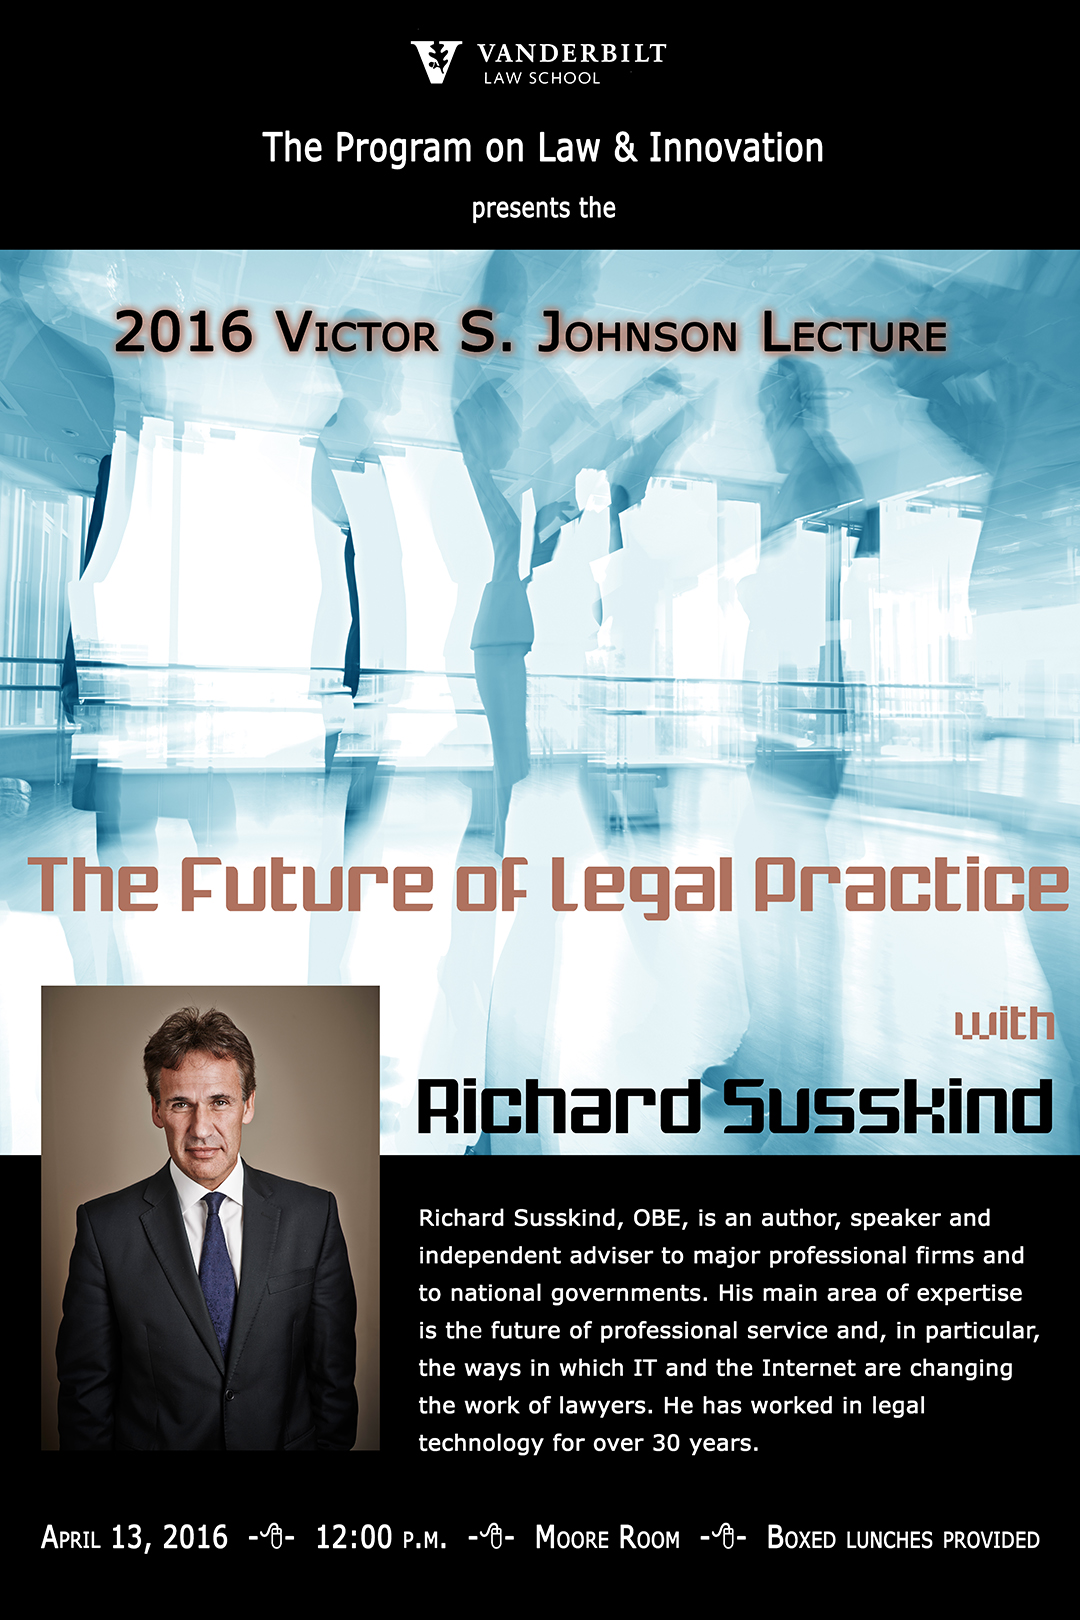 2016 Victor S. Johnson Lecture: The Future of Legal Practice with Richard Susskind